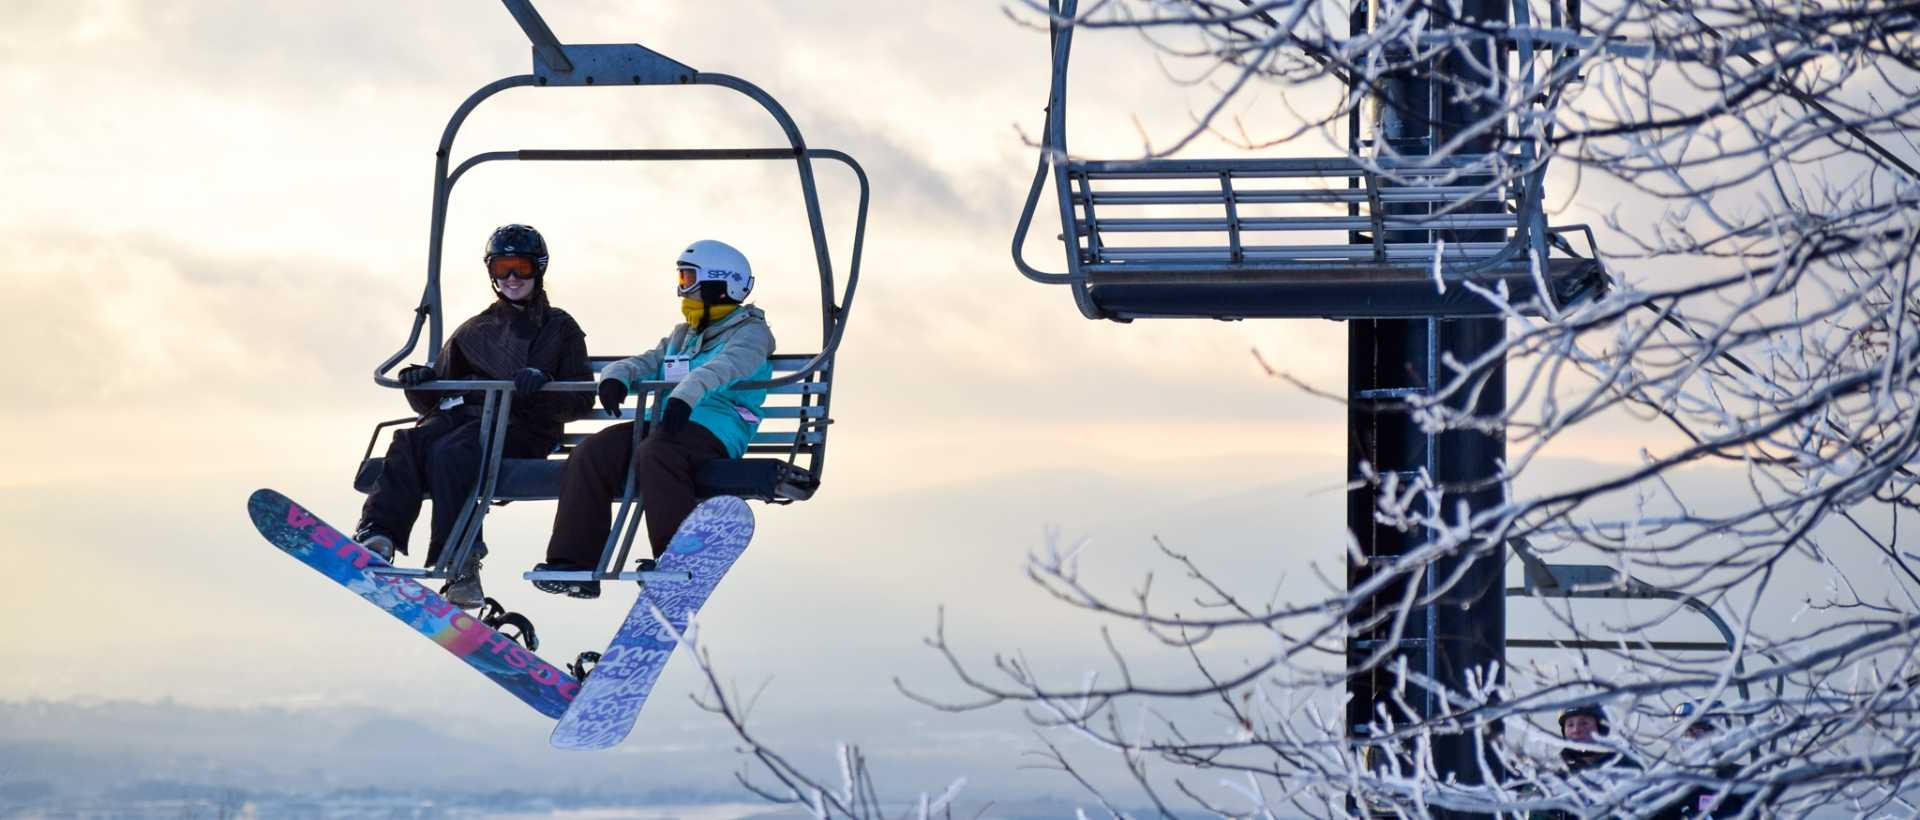 Snowboarders riding on the ski lift at Montage Mountain in Moosic, Lackawanna County, PA.